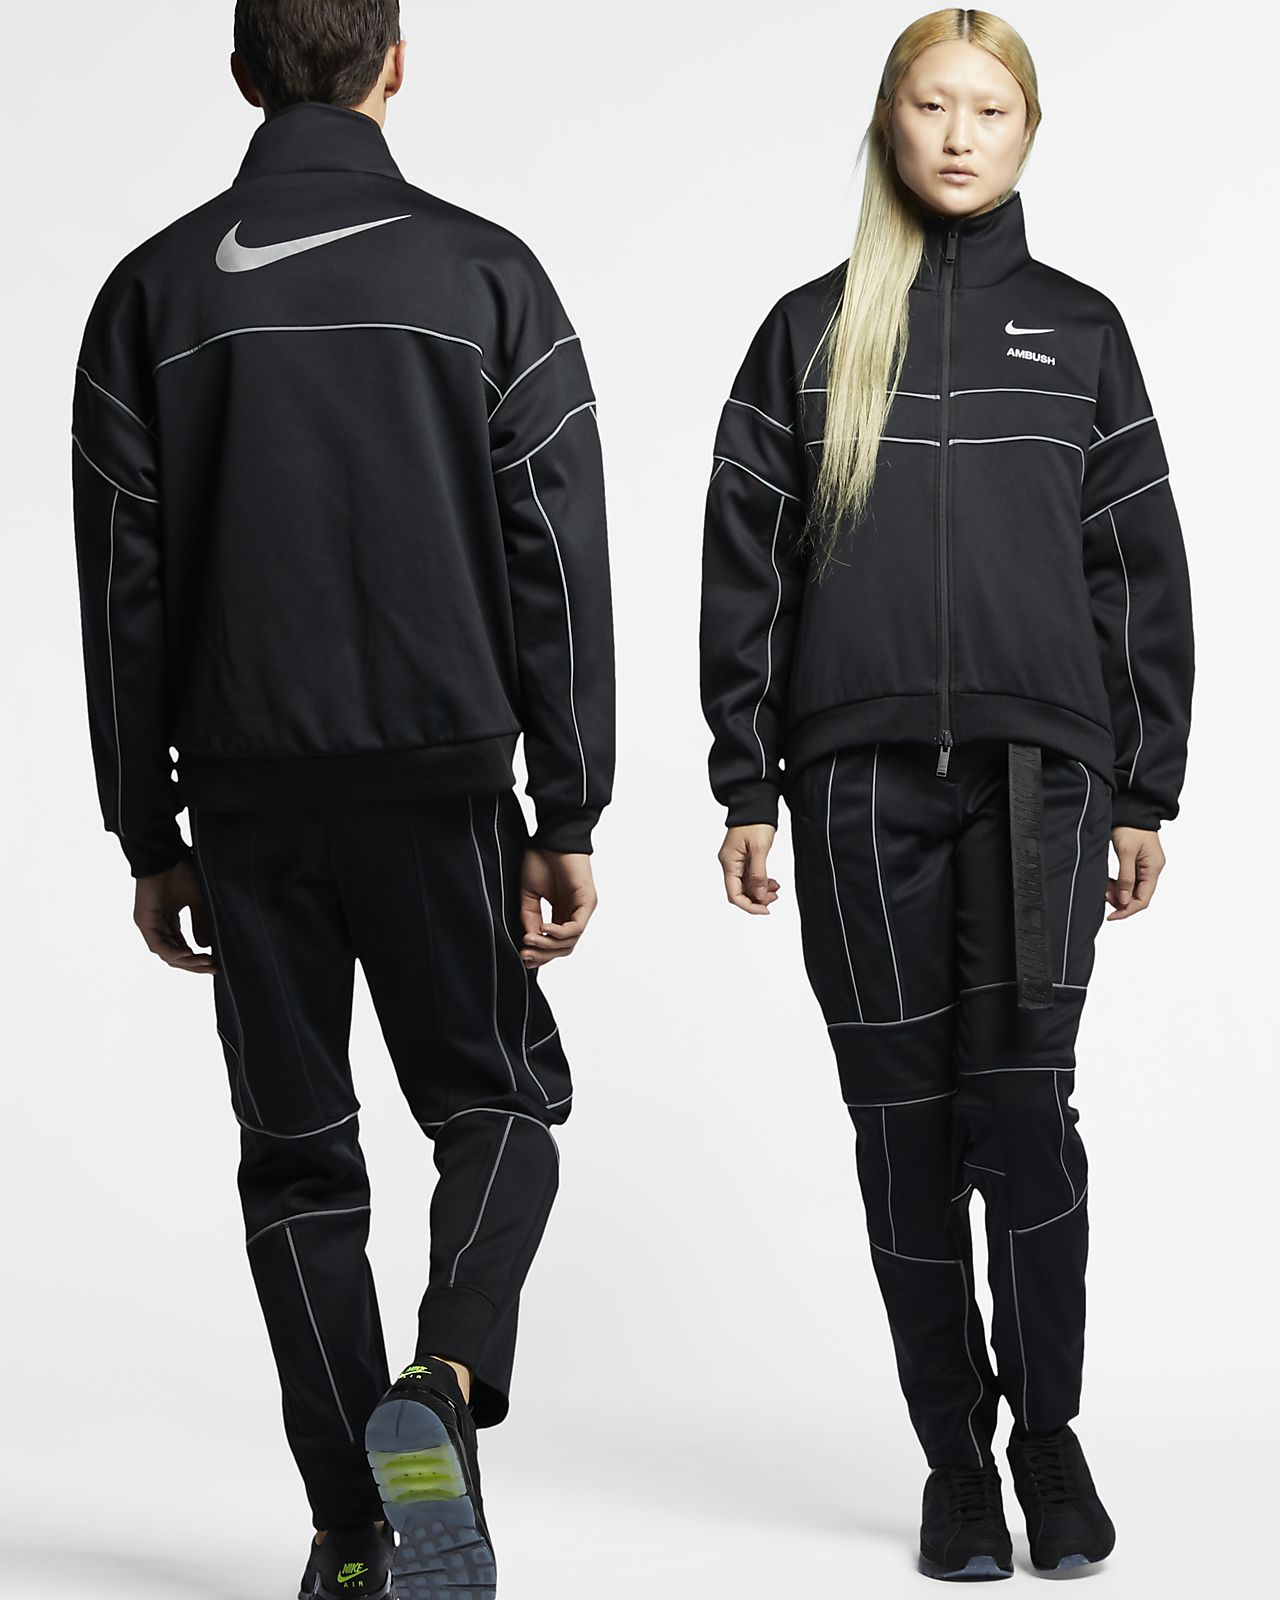 Nike x Ambush Women's Reversible Jacket